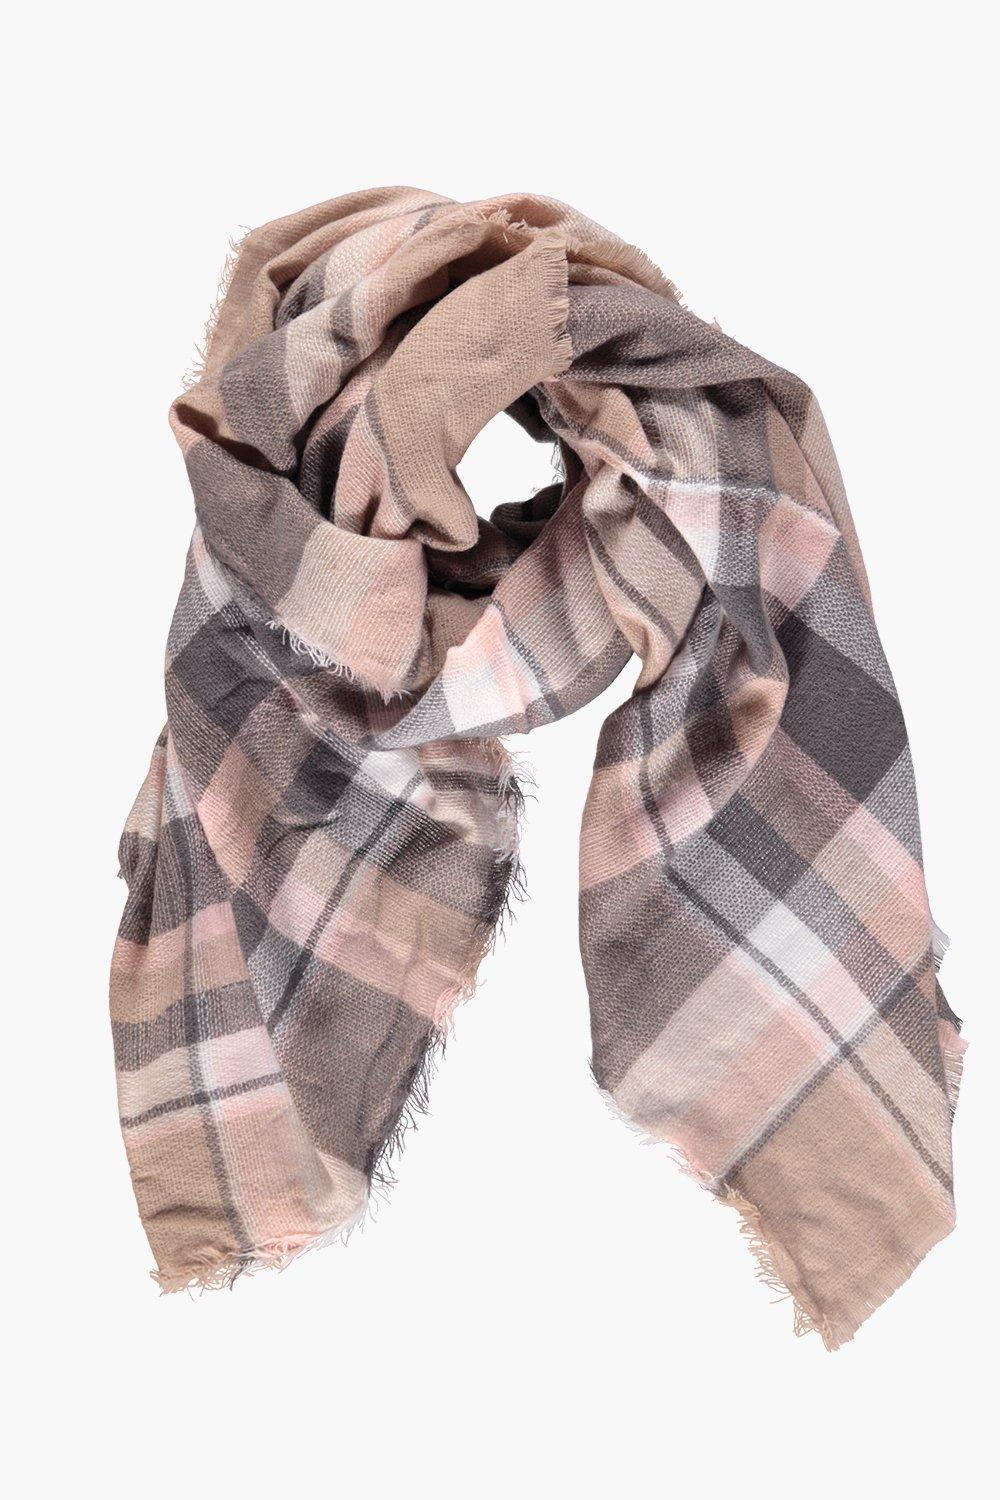 Tartan Check Oversized Wrap Scarf Multi - predominant colour: blush; secondary colour: charcoal; occasions: casual, creative work; type of pattern: light; style: square; size: large; material: knits; pattern: checked/gingham; season: a/w 2016